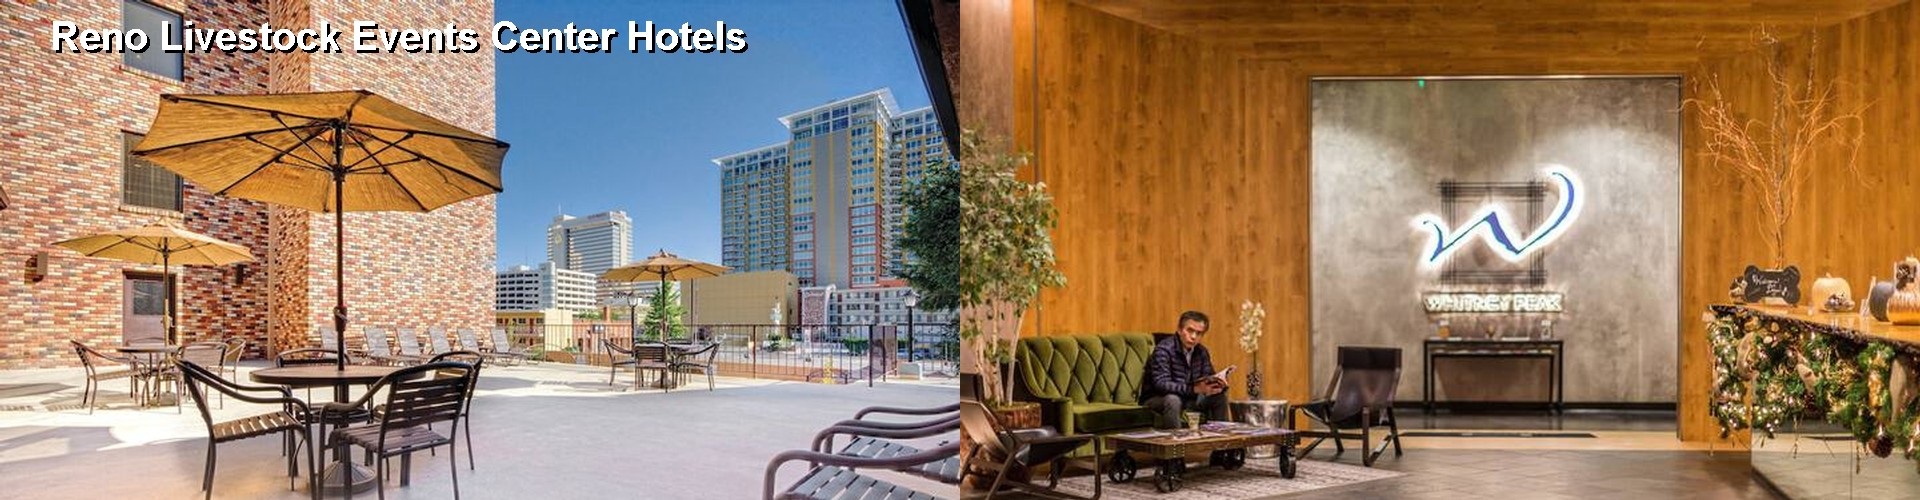 4 Best Hotels near Reno Livestock Events Center